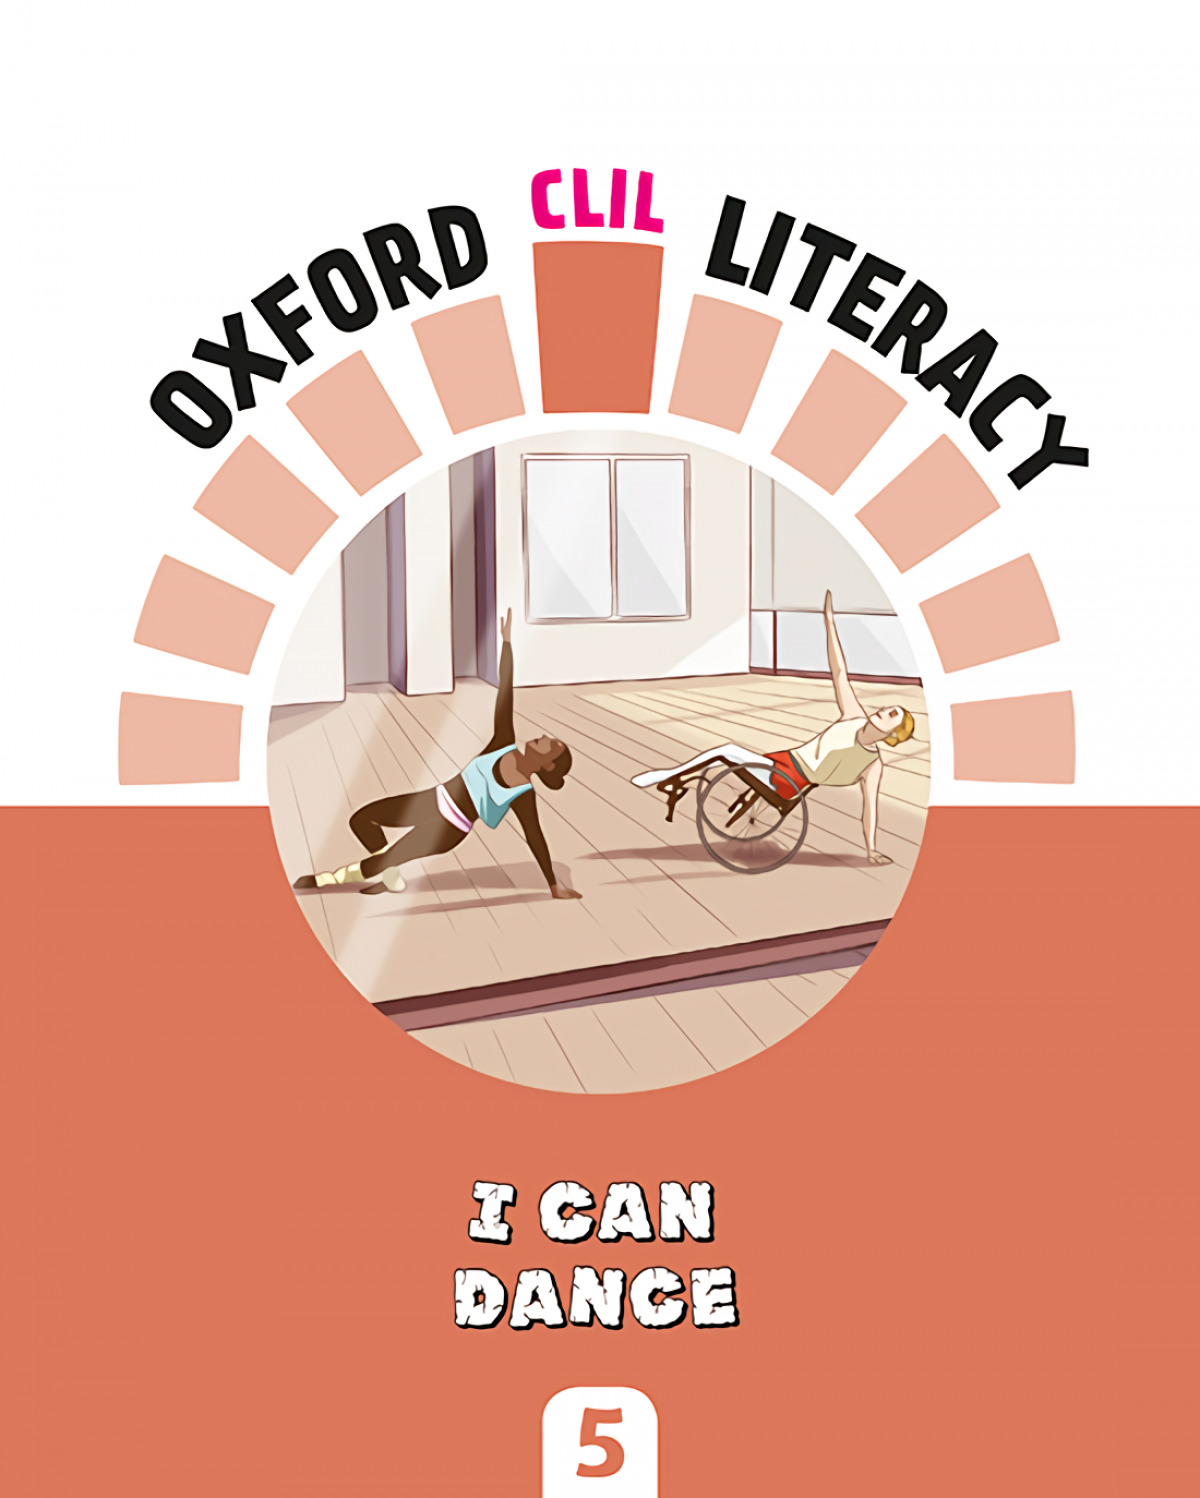 Oxford CLIL Literacy Music Primary 5. I can dance